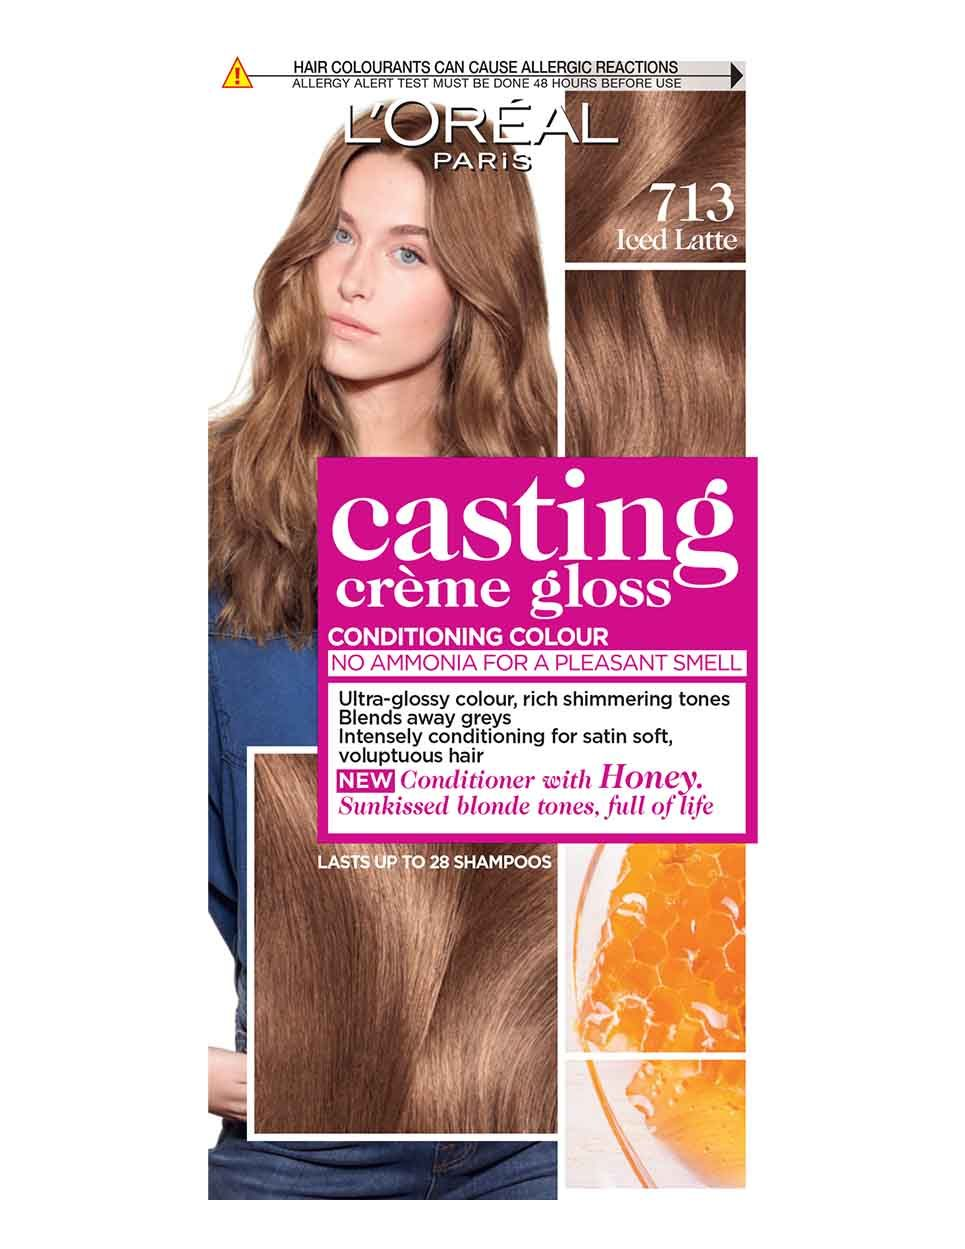 Embrace Glossy Glowing Hair Colour With Casting Creme Gloss Iced Latte The Semi Permanent Conditioning Colour With No Ammonia From L Oreal Paris